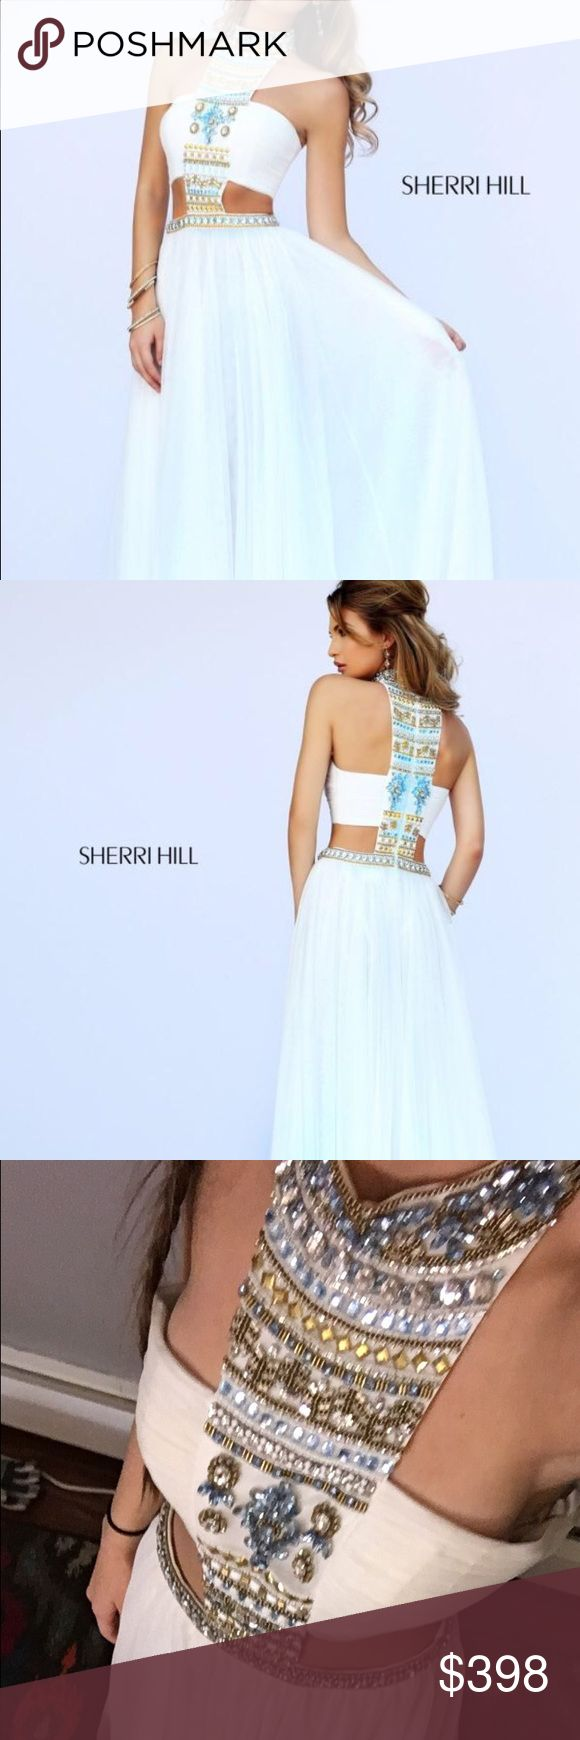 Sherri hill white prom dress This is a white Sherri hill prom dress that was only worn once! (I couldn't find any prom pictures) on the outside it's in almost perfect condition except for a stain the size of a dime that's on the inside of the neck there is makeup stains but none are visible from the outside! You can see that it looks a little large on me, I'm a size 0 and this dress is size 4! Love this dress so much just sad I can't wear it! It'll make any girl look stunning! (Please email…